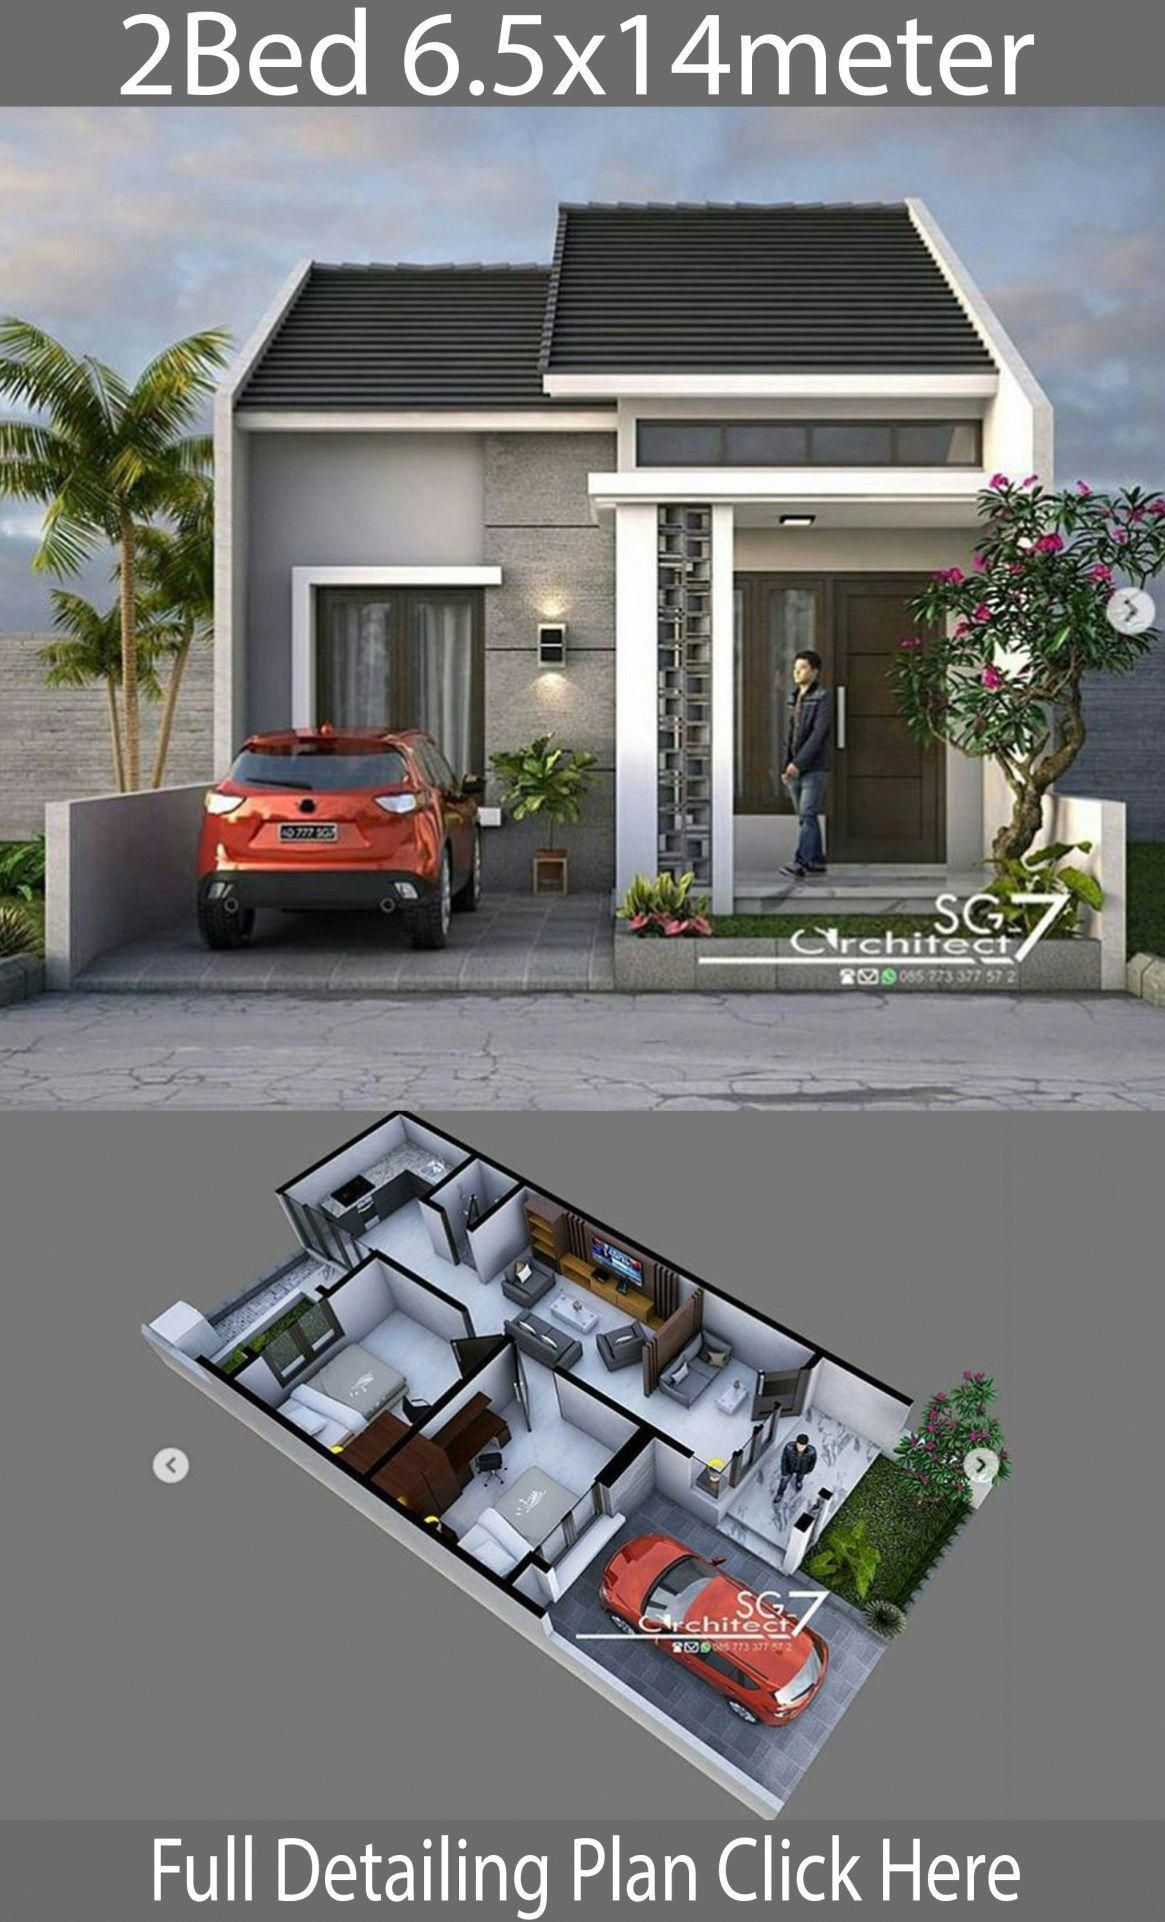 2 Bedrooms Home Design Plan 6 5x14m Home Design With Plansearch Besthomedesigns Minimalist House Design Home Design Plan Minimalis House Design